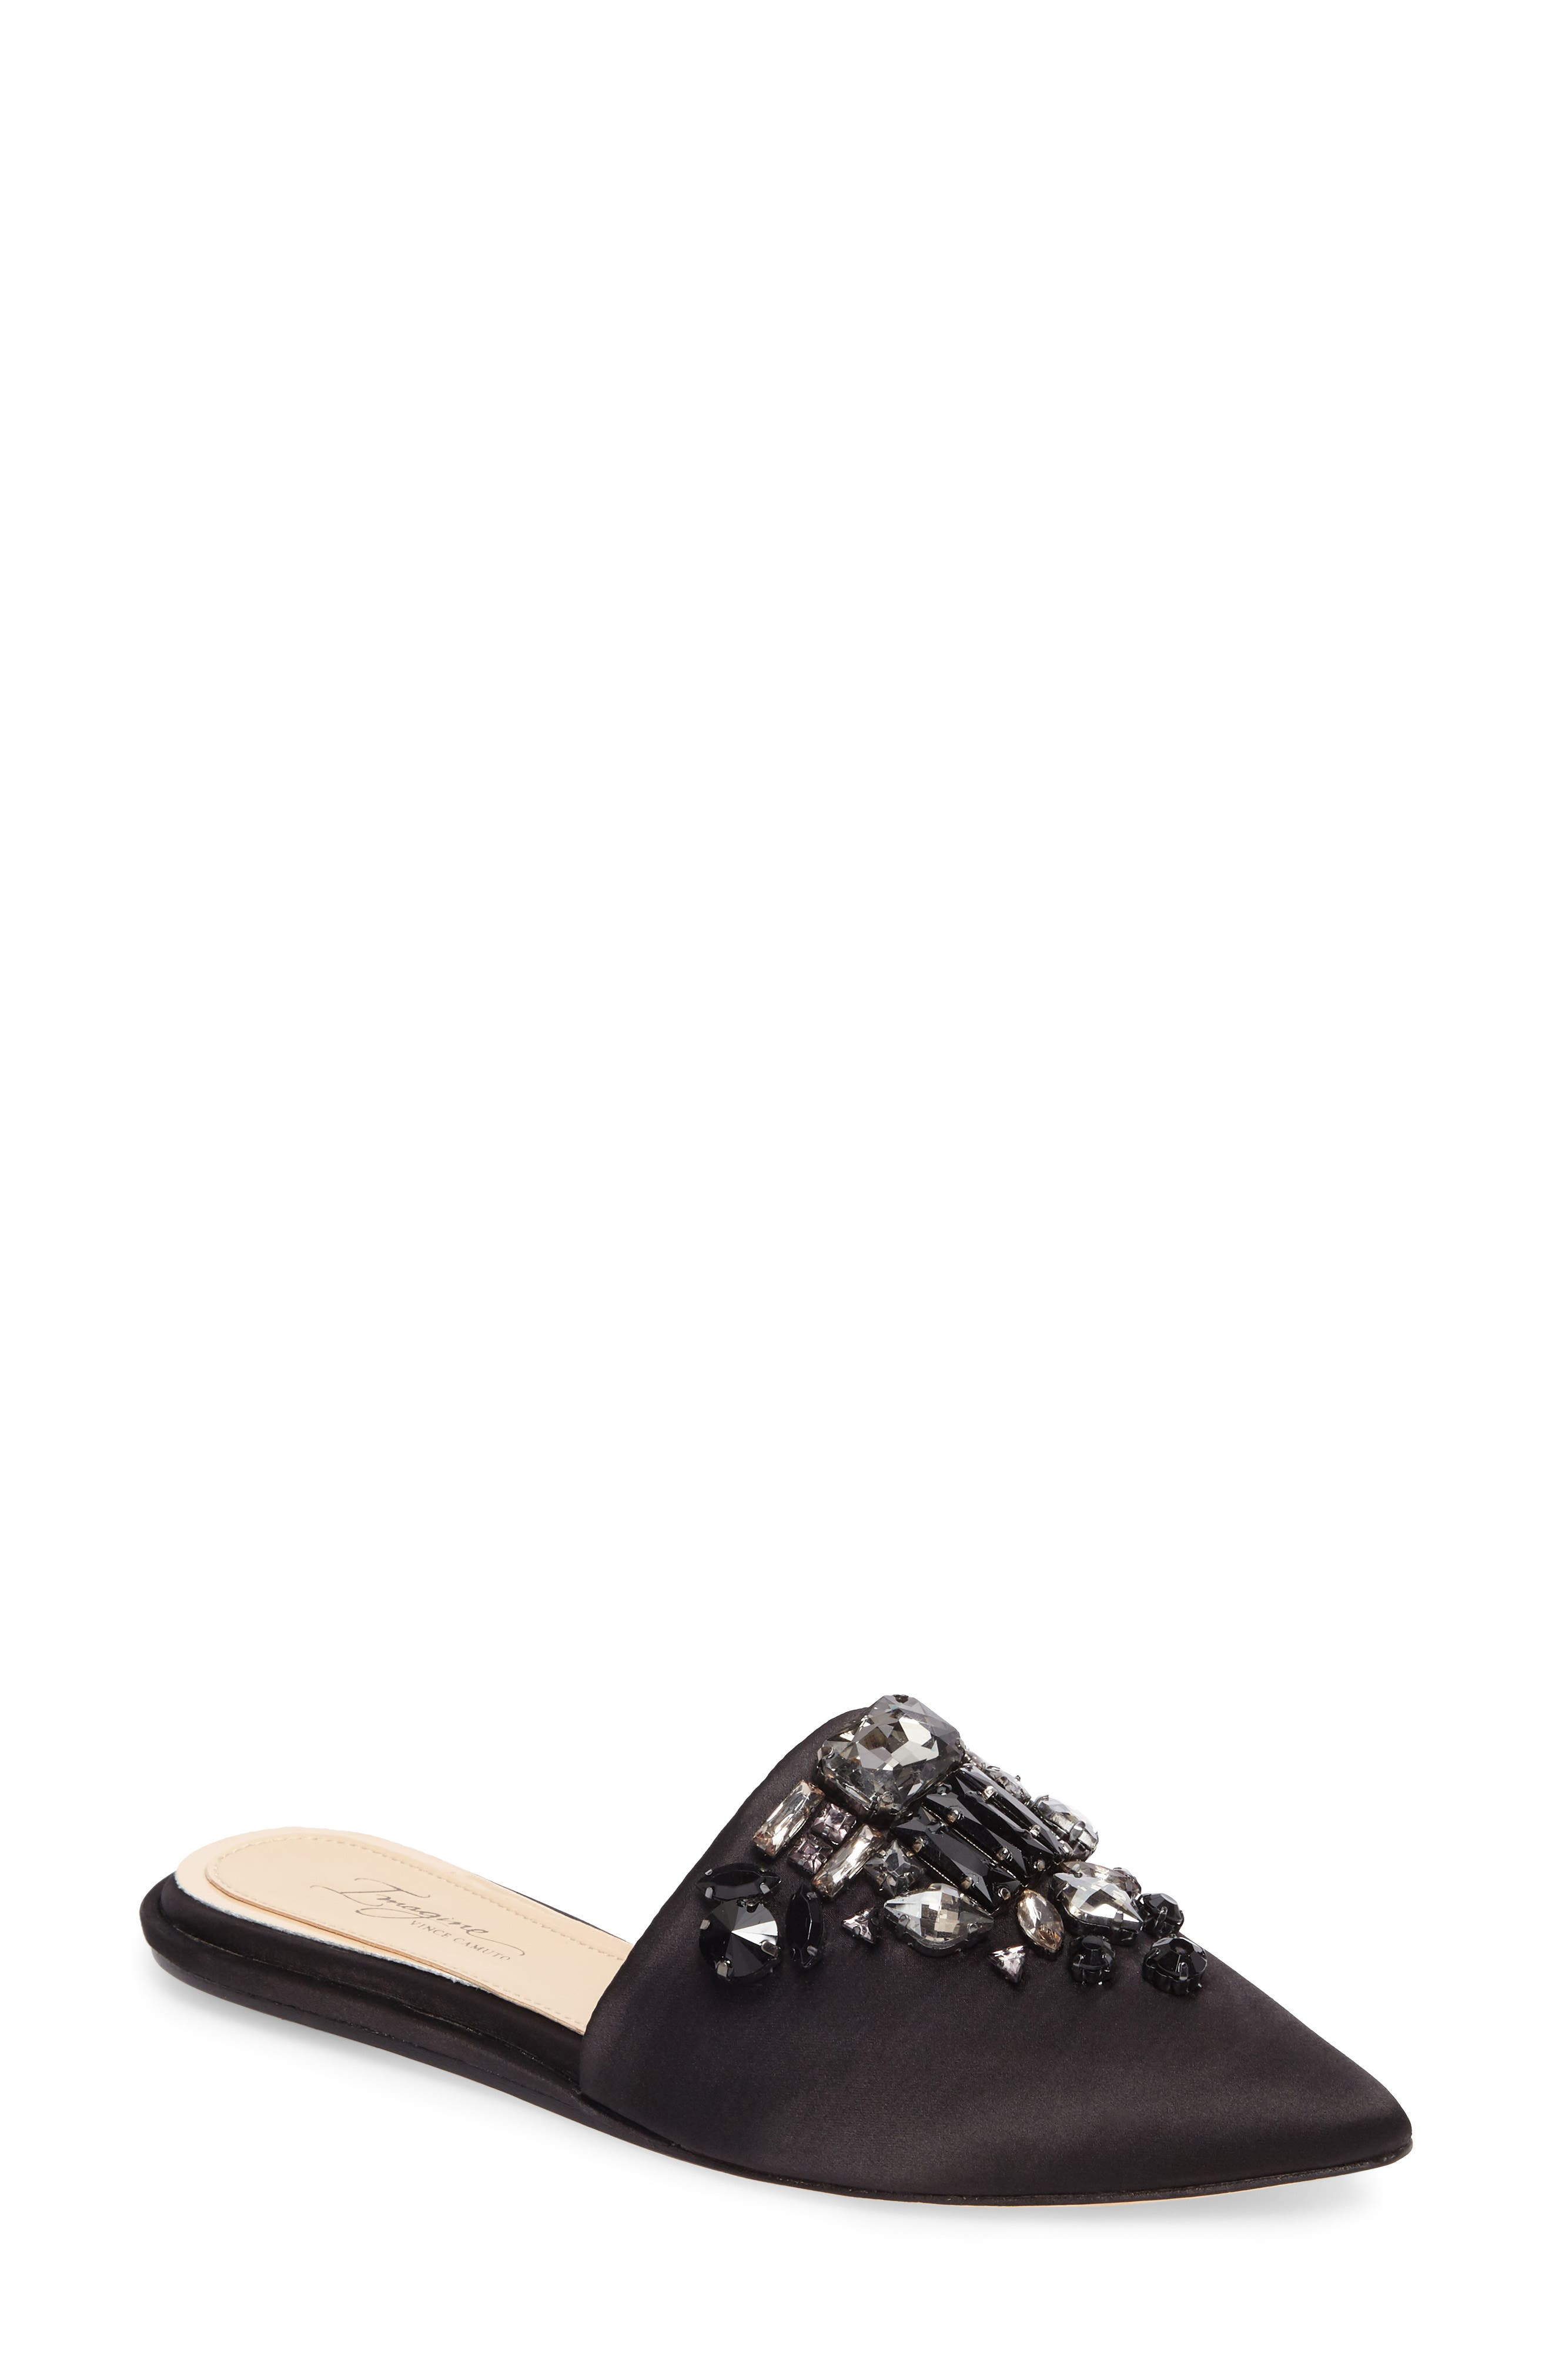 Imagine Vince Camuto Caide Embellished Mule,                             Main thumbnail 1, color,                             001